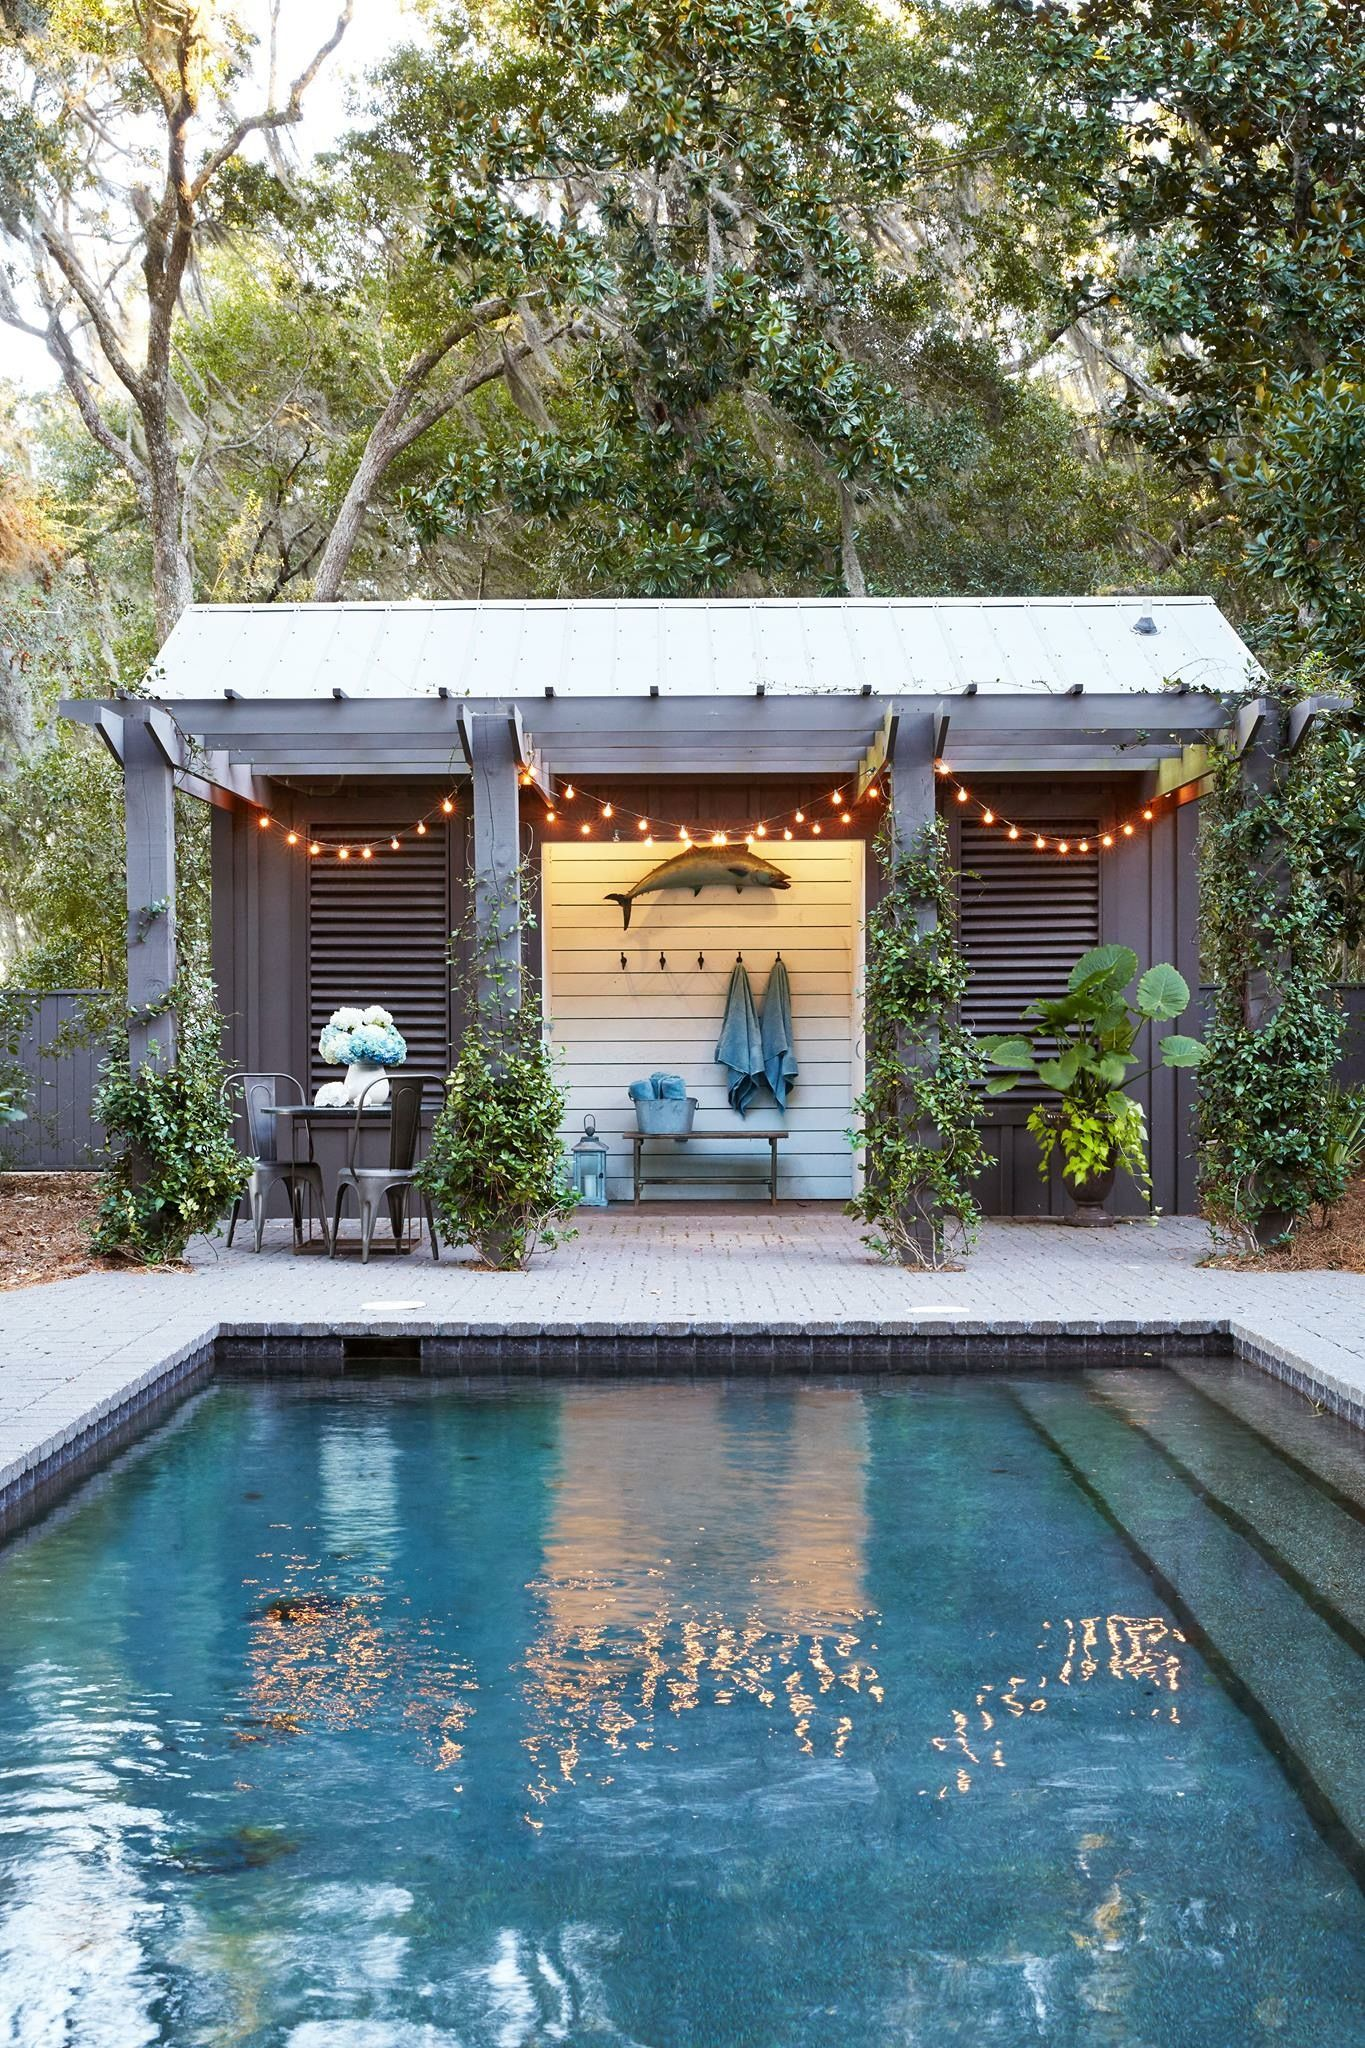 Extend Pergola over front of shed | Pool changing rooms ...